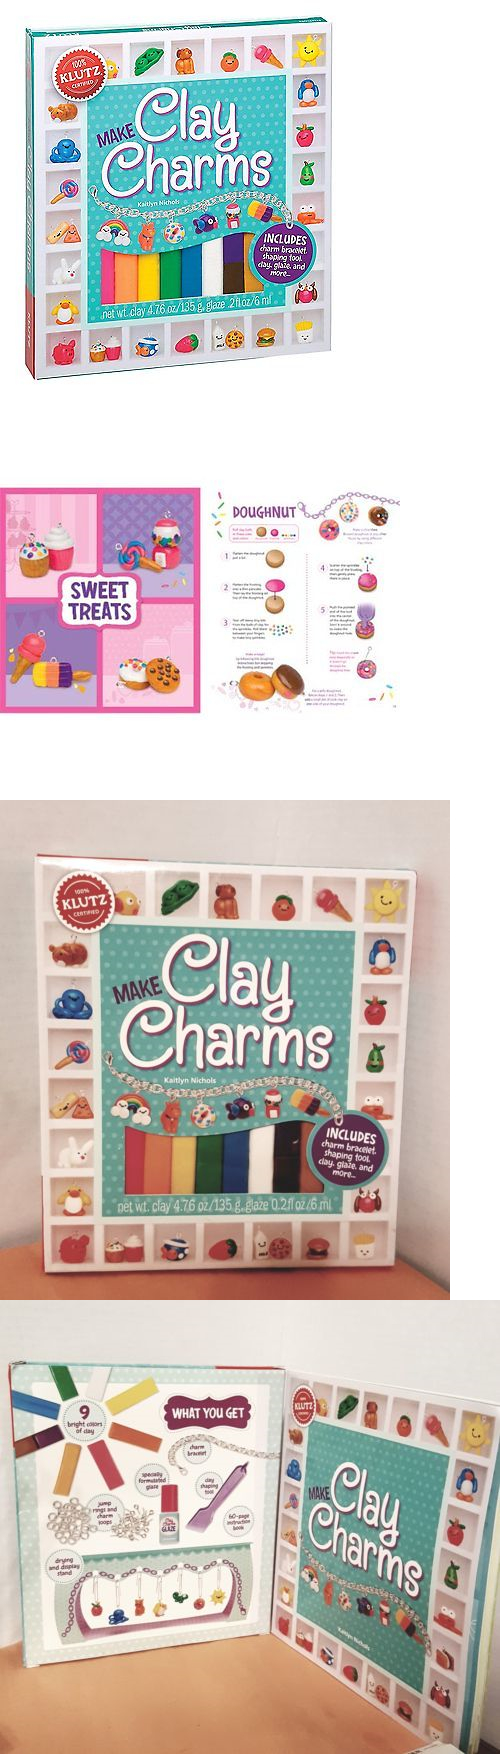 Craft Kits 116655 Make Glitter Clay Charms With 35 New Designs